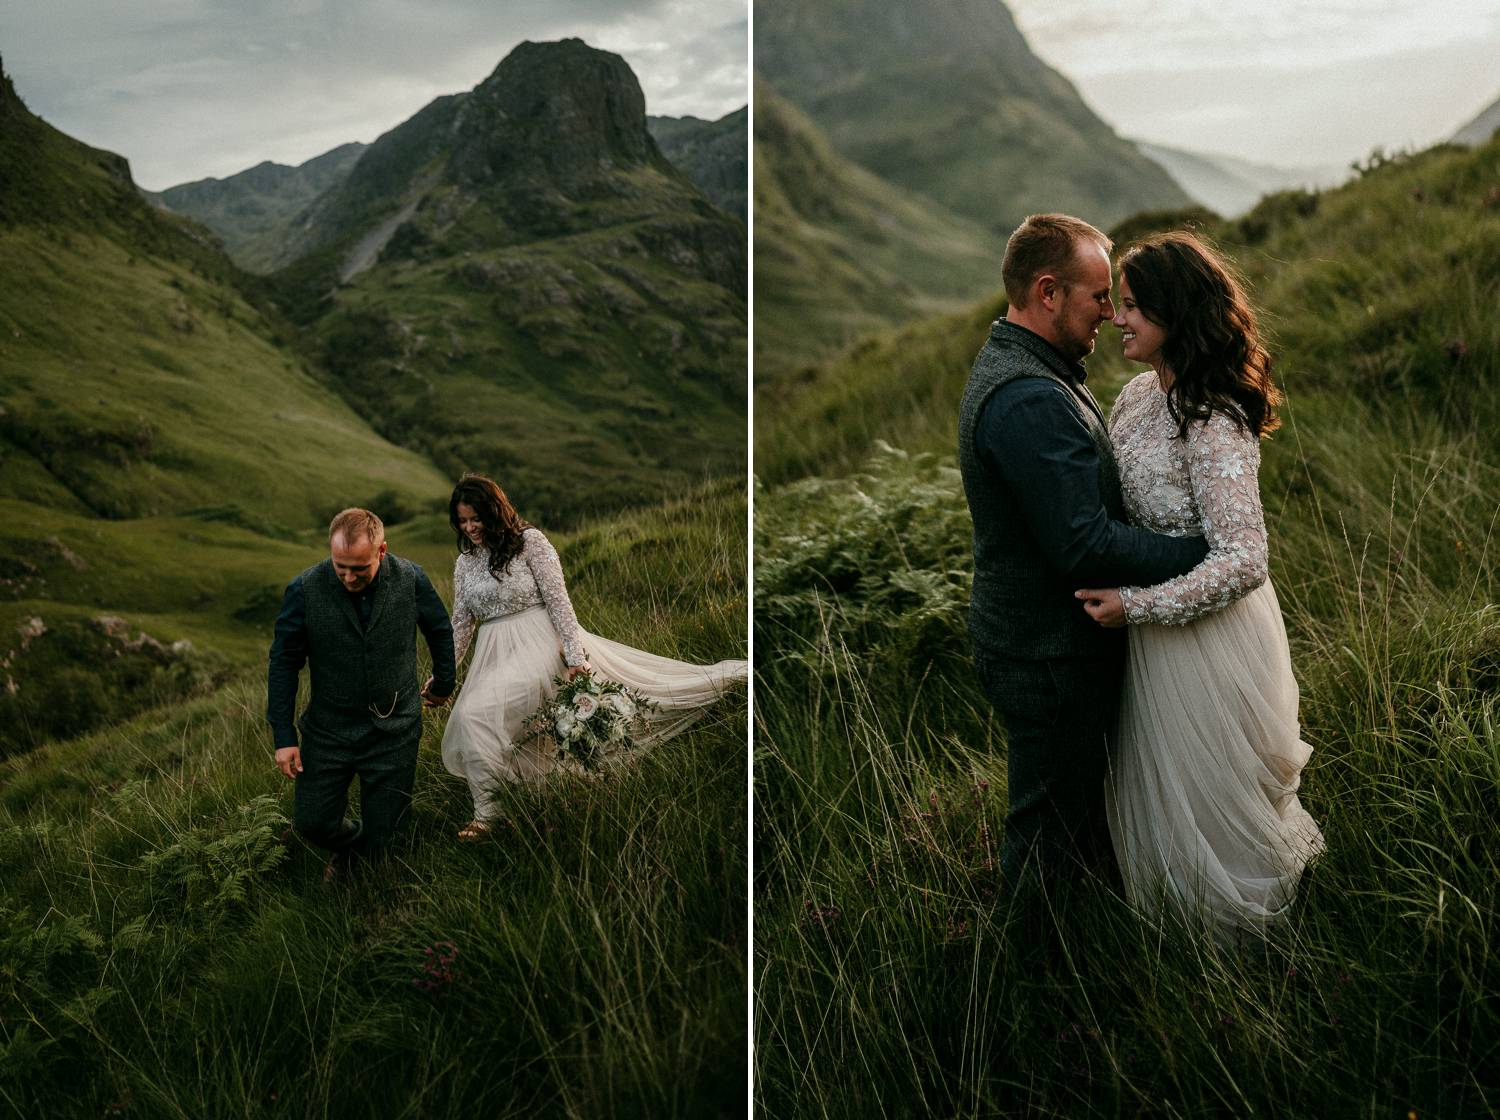 A bride and groom slowly make their way through the tall grasses in the Irish hills. Photographed by Rob Dight.